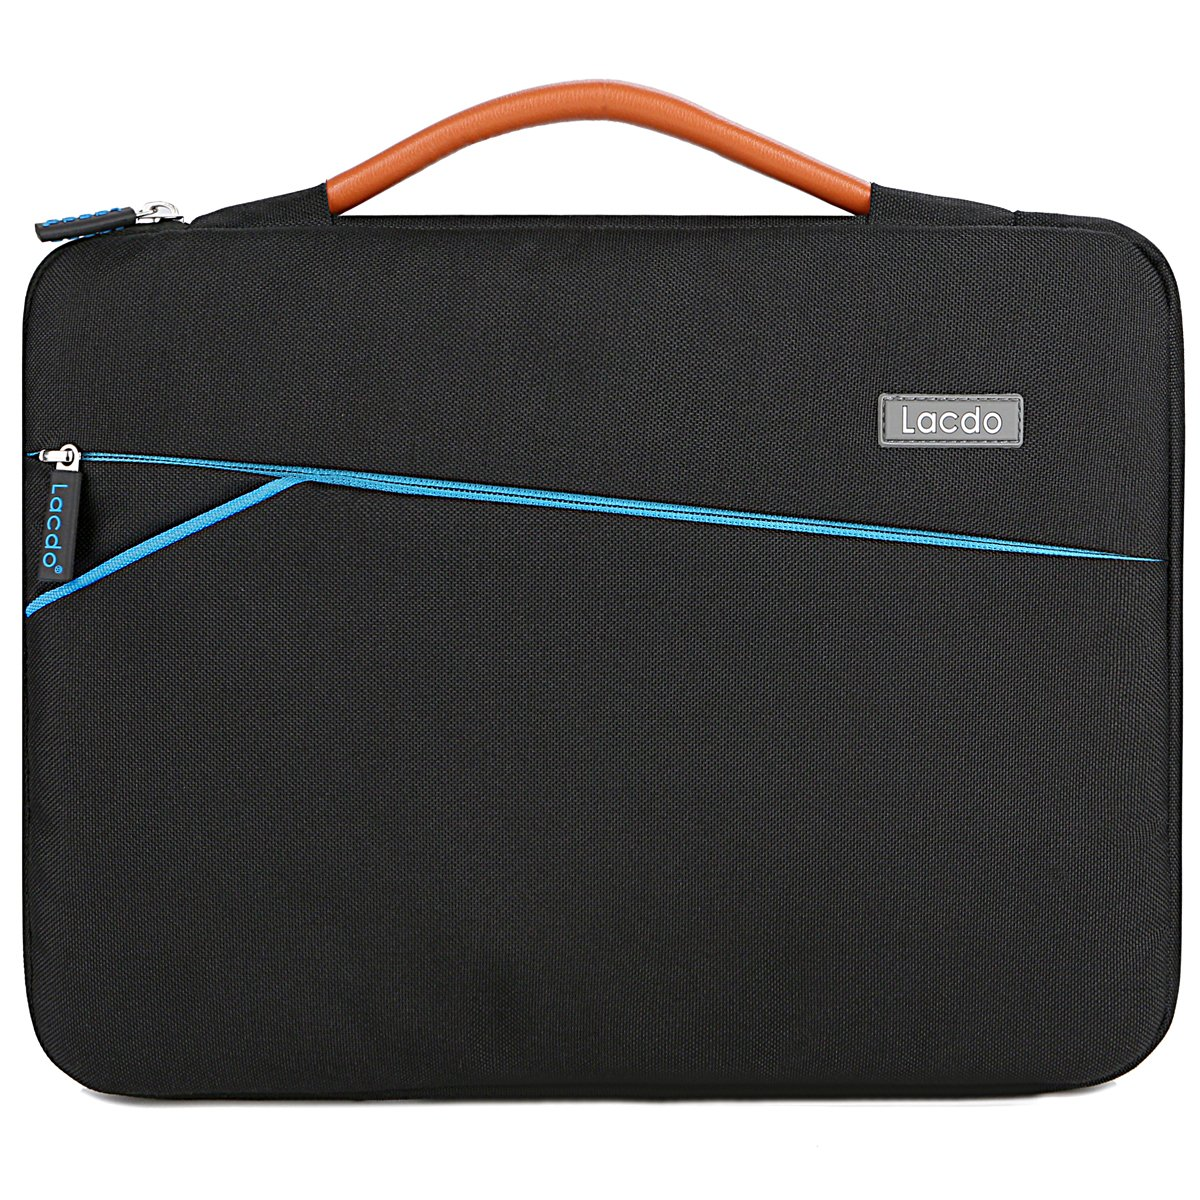 Lacdo 360° Protective Laptop Sleeve Case Briefcase for 13-13.3 Inch Apple MacBook Air | MacBook Pro Retina 2012-2015 | Surface Book | 12.9 Inch iPad Pro, Dell HP ASUS Acer Chromebook Tablet Bag,Black